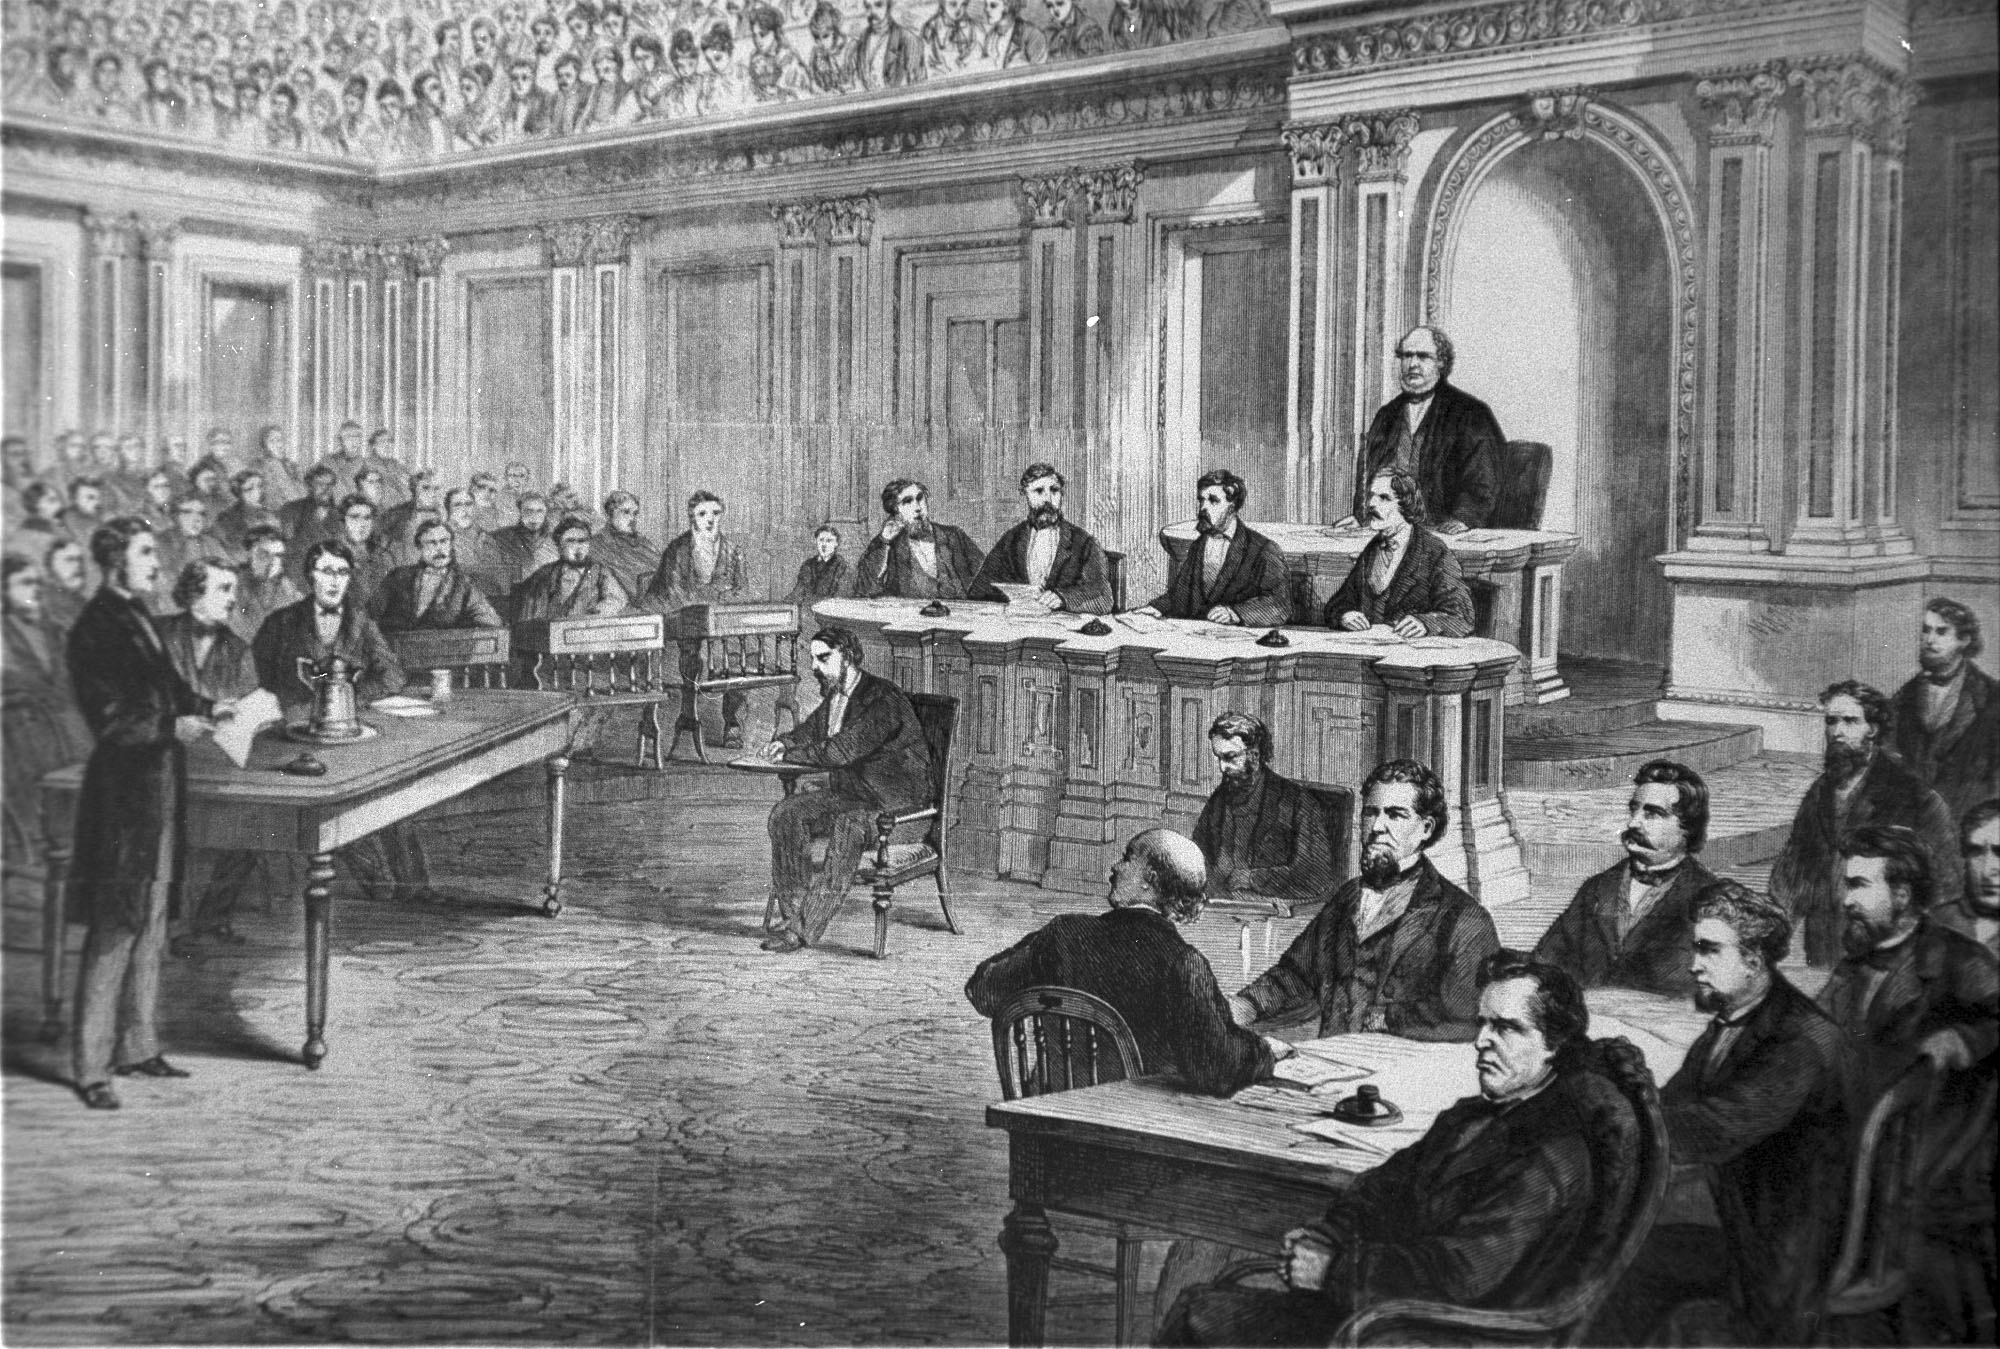 An engraving showing the impeachment trial of President Andrew Johnson in the Senate on March 13, 1868